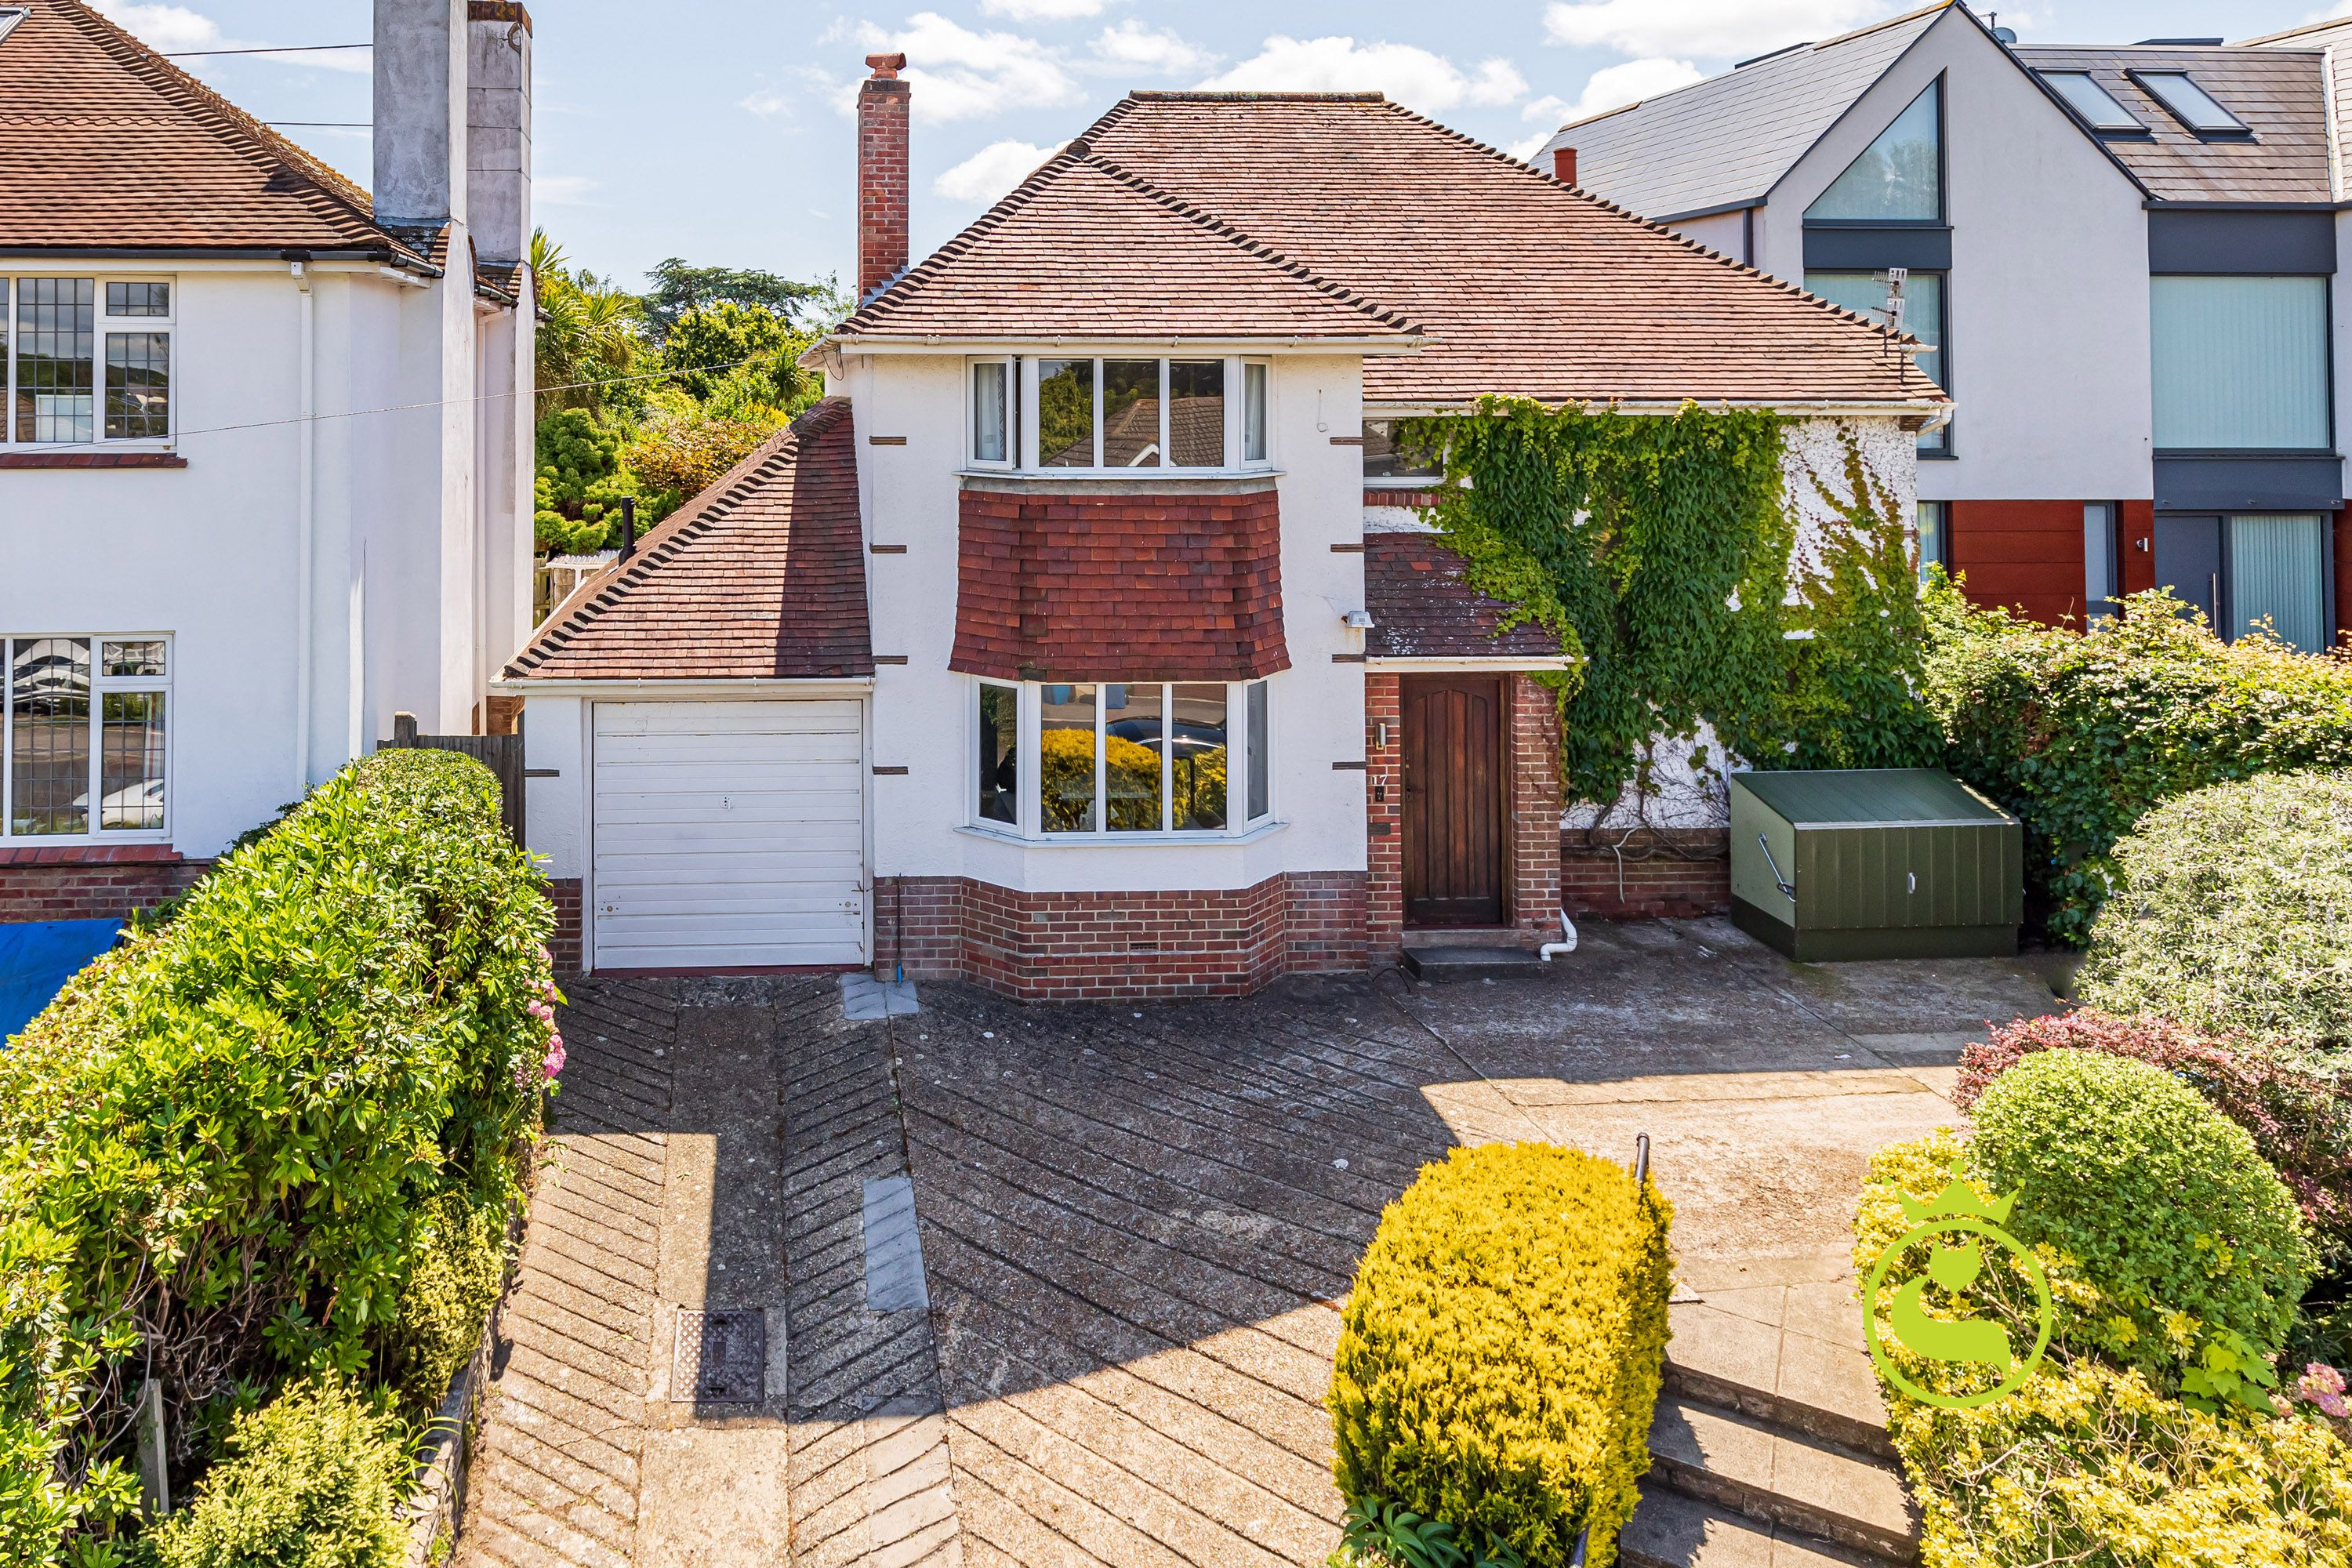 A stunning three bedroom two bathroom detached with scope to make into a super home. Located in one of Lilliput's most prestigious roads it even has its own communal paddock! Being just a few hundred yards away from the Harbourside this property must not be missed!